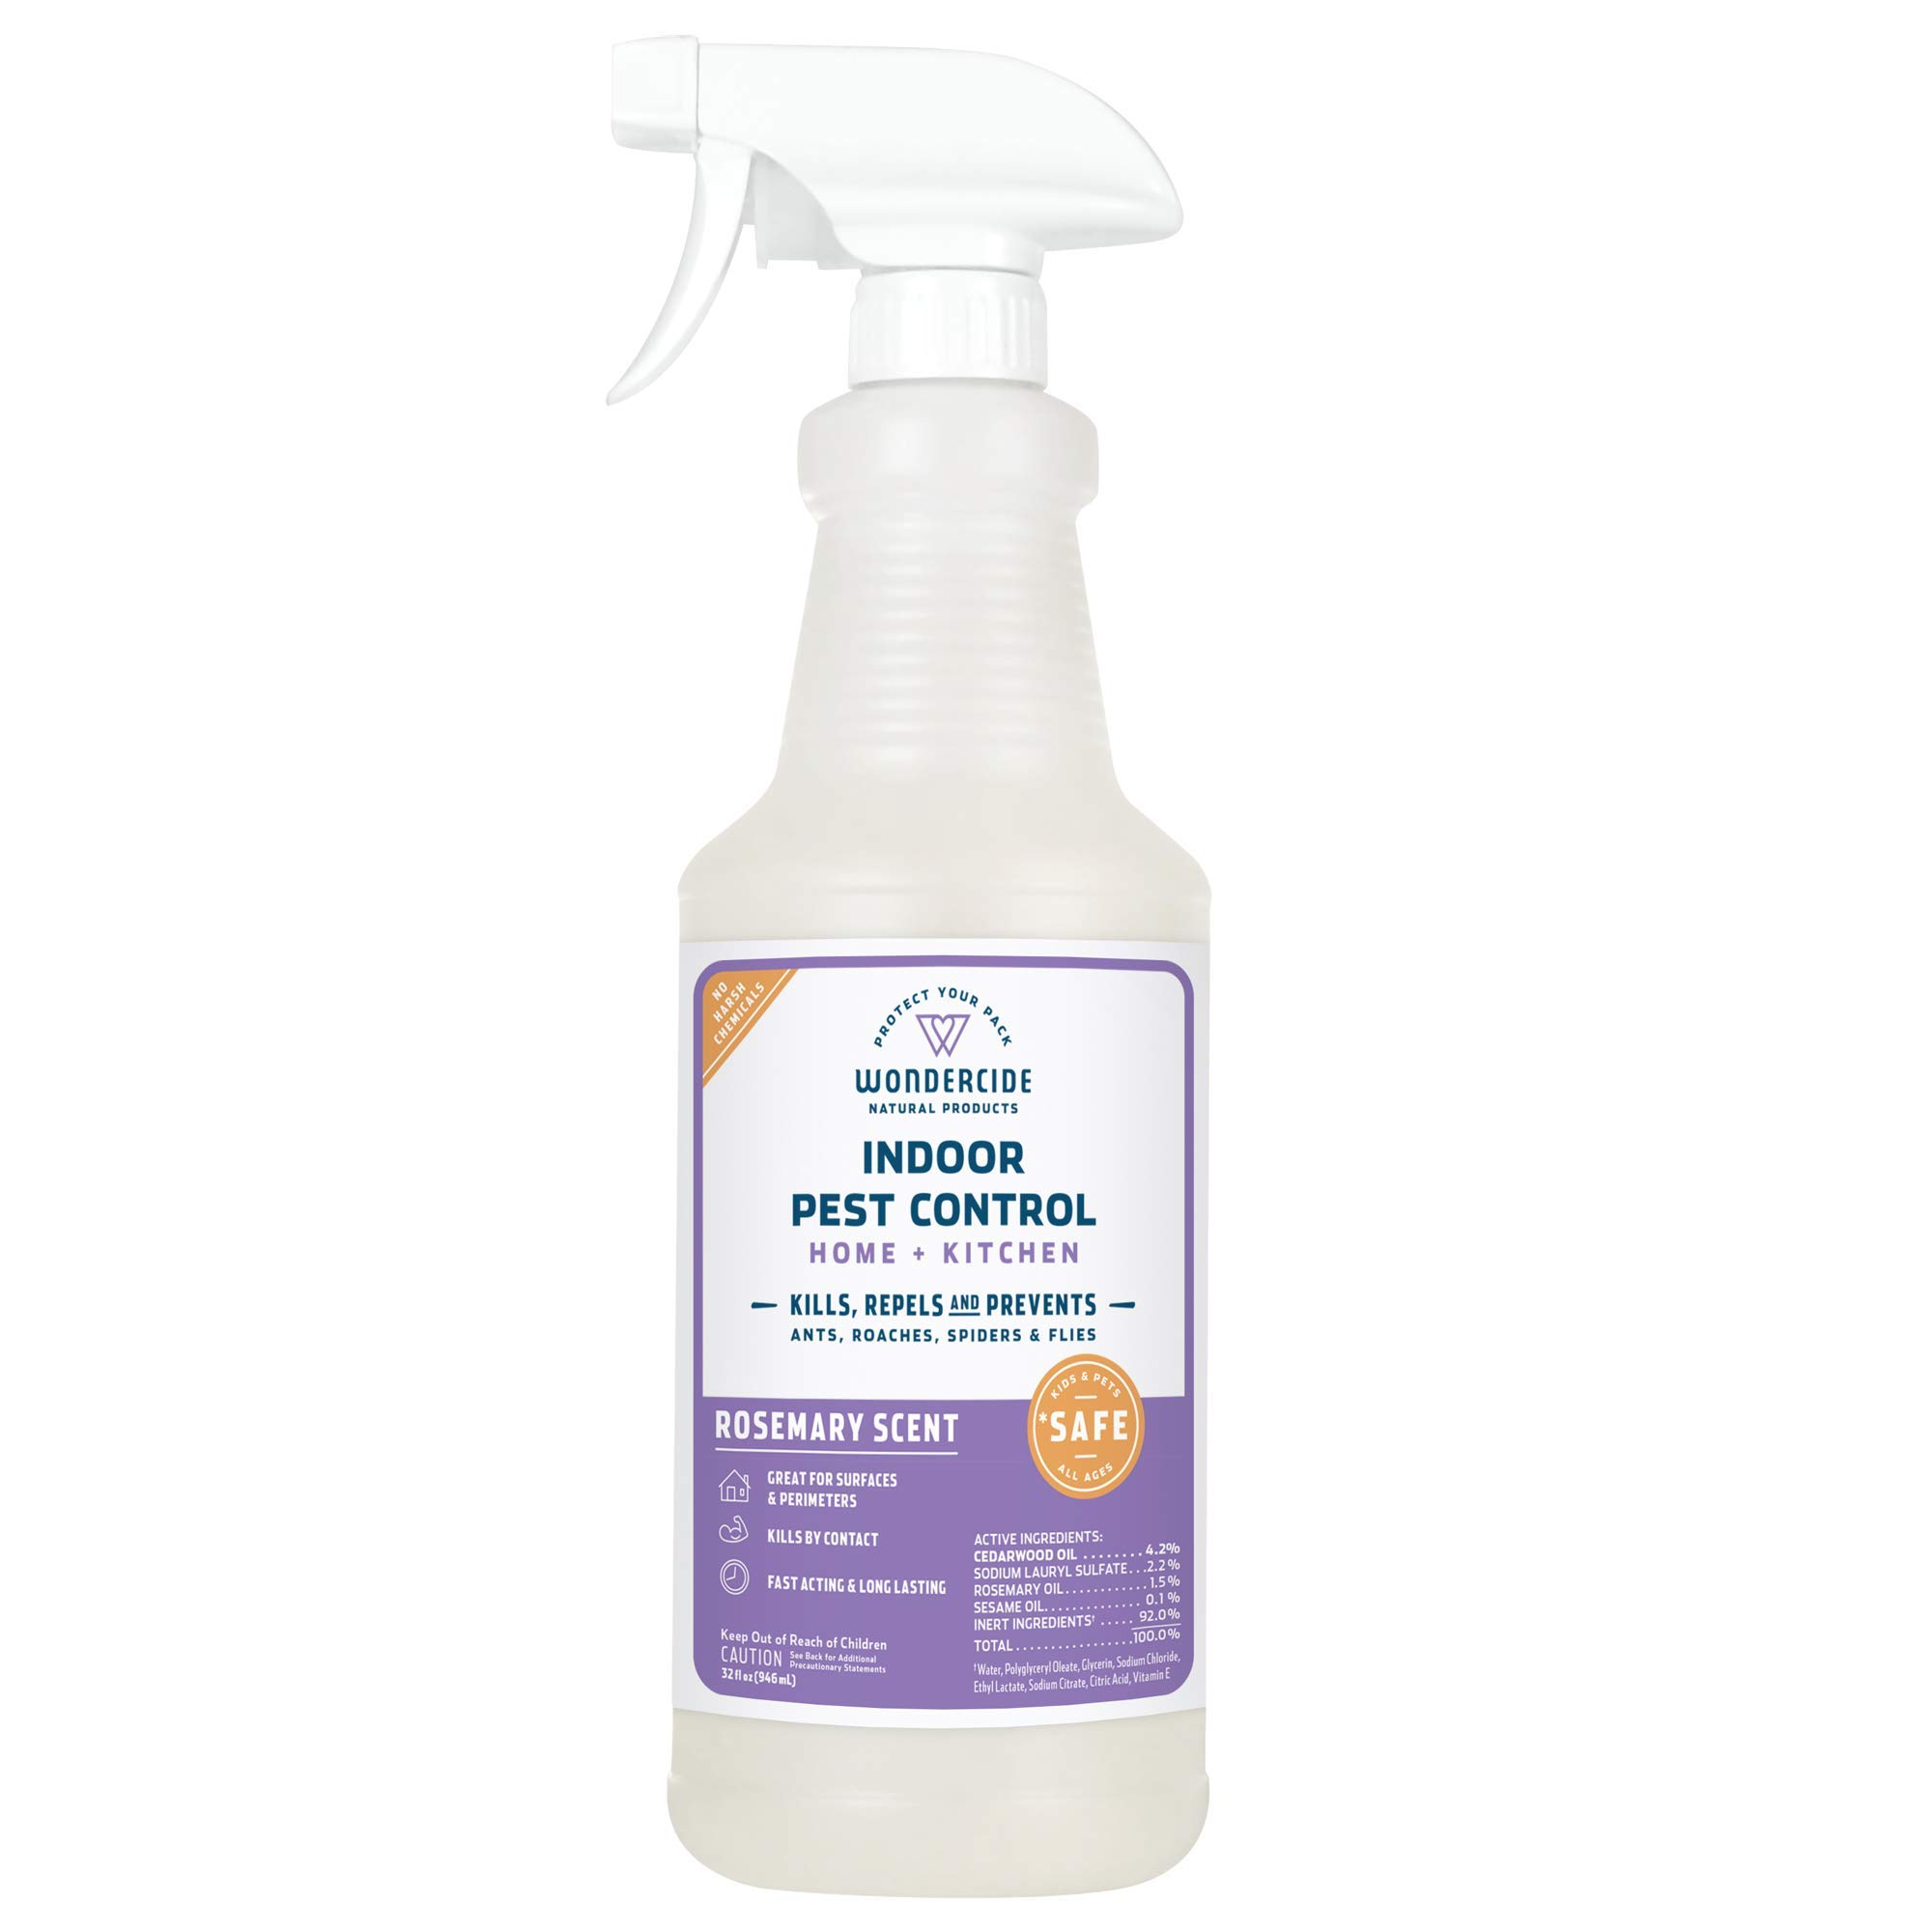 Wondercide Natural Indoor Pest Control Spray for Home and Kitchen - Fly, Ant, Spider, Roach, and Bug Killer and Repellent - 32 oz Rosemary by Wondercide